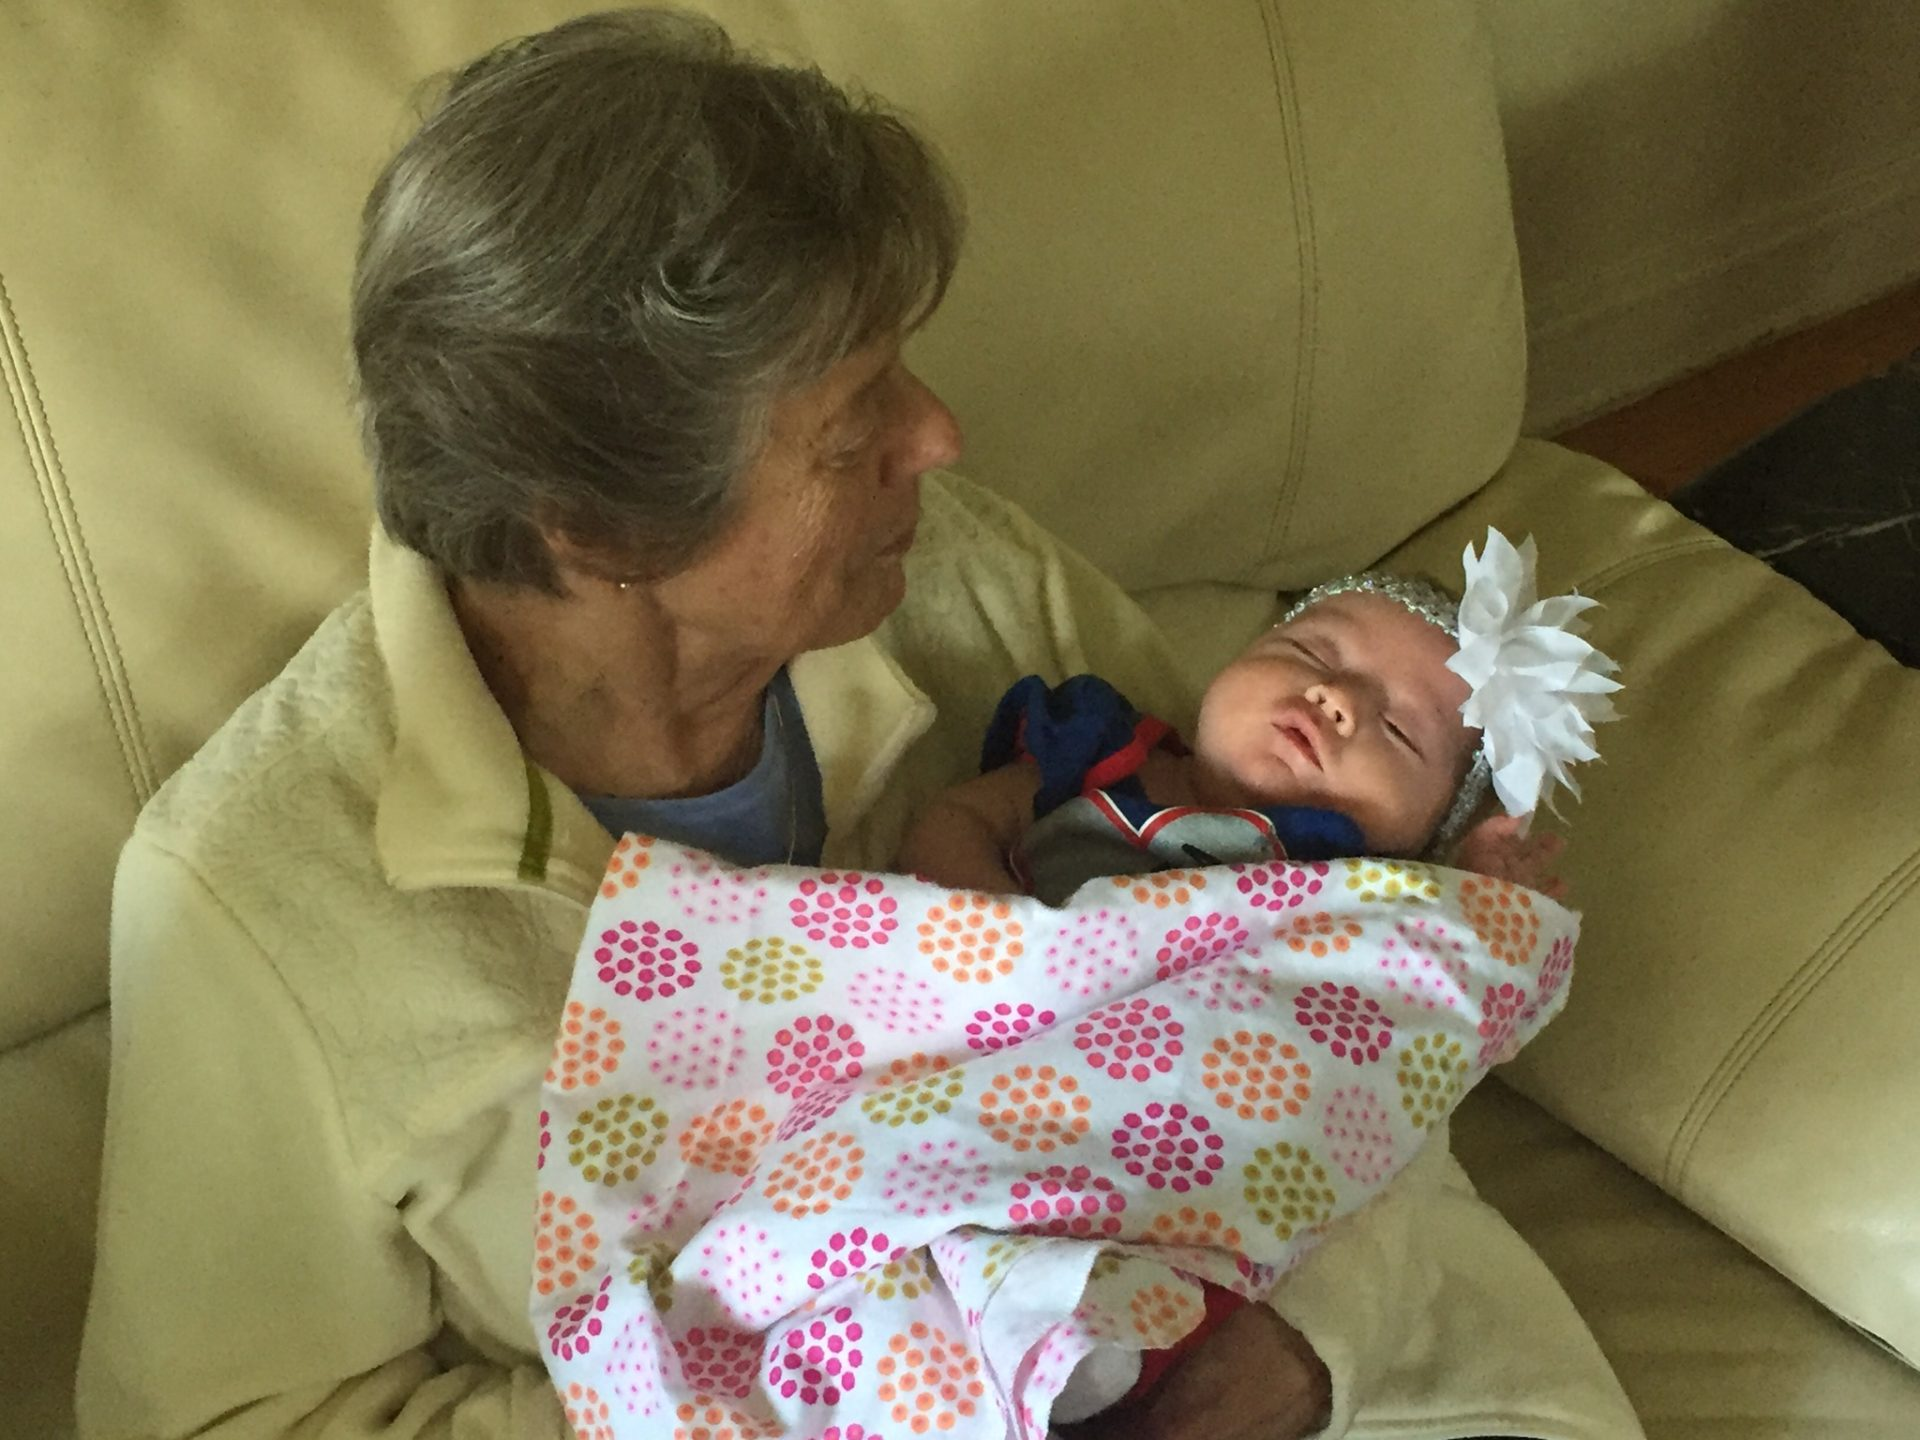 This is the first time she met her great granddaughter, Amelia. She was very comfortable having Great Grandma D holding her. My mom was a special lady.